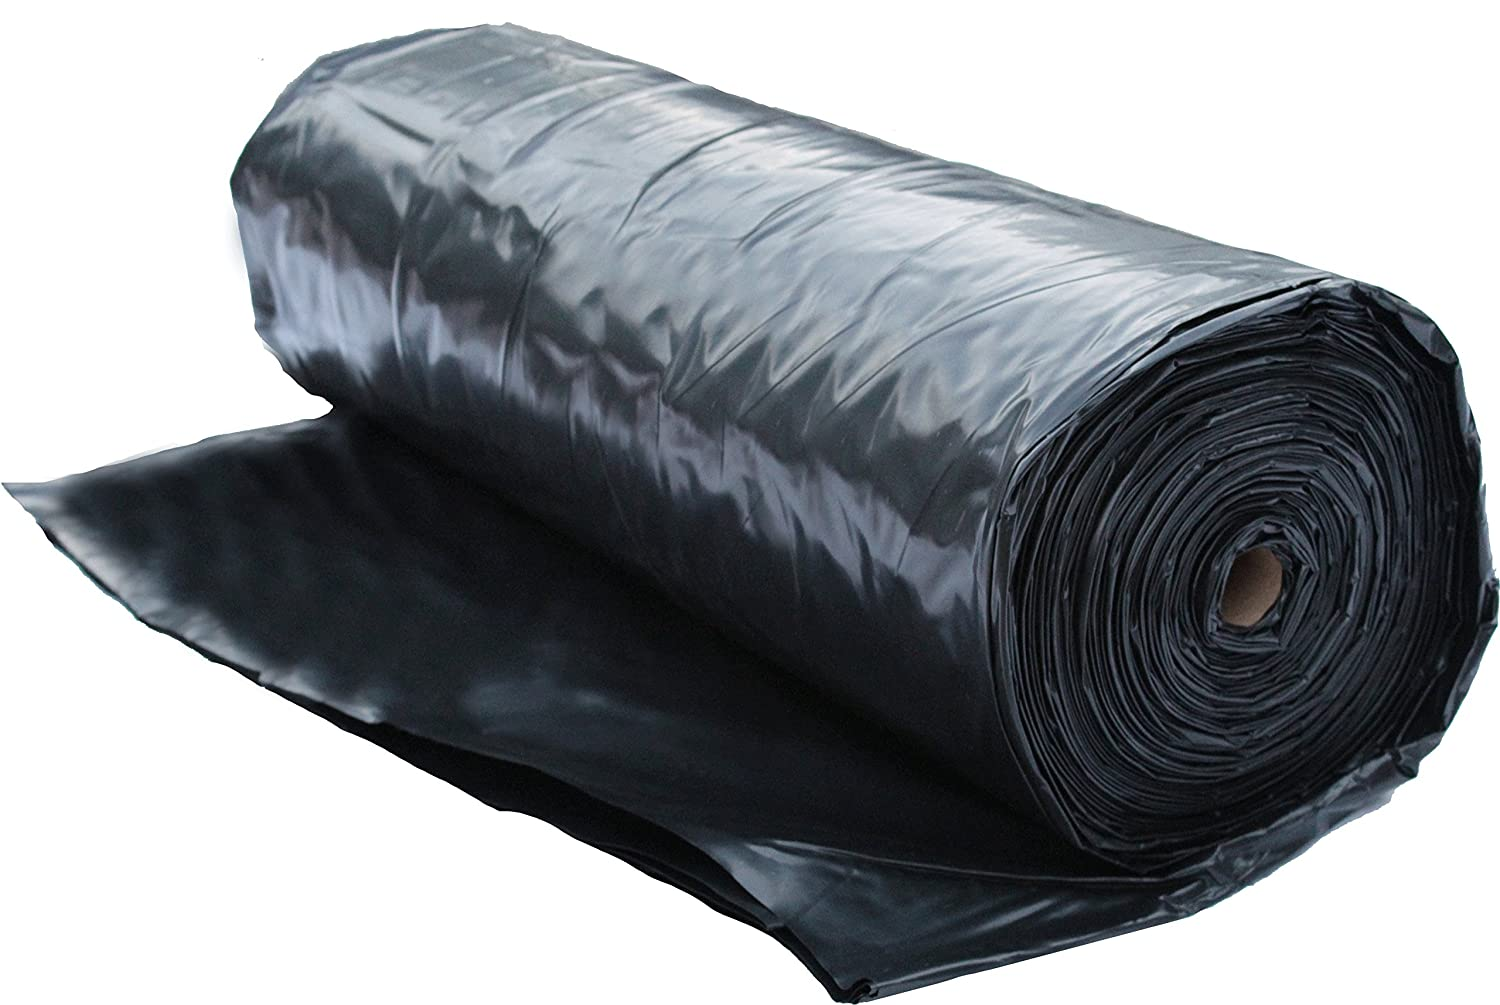 6 Mil Polyethylene Sheeting Roll (20' x 100') Black Plastic Sheeting, Plastic Tarp, Plastic Mulch, Weed Barrier, Concrete Moisture, Vapor Barrier, Construction Film, Lumber Tarp, Ground Cover